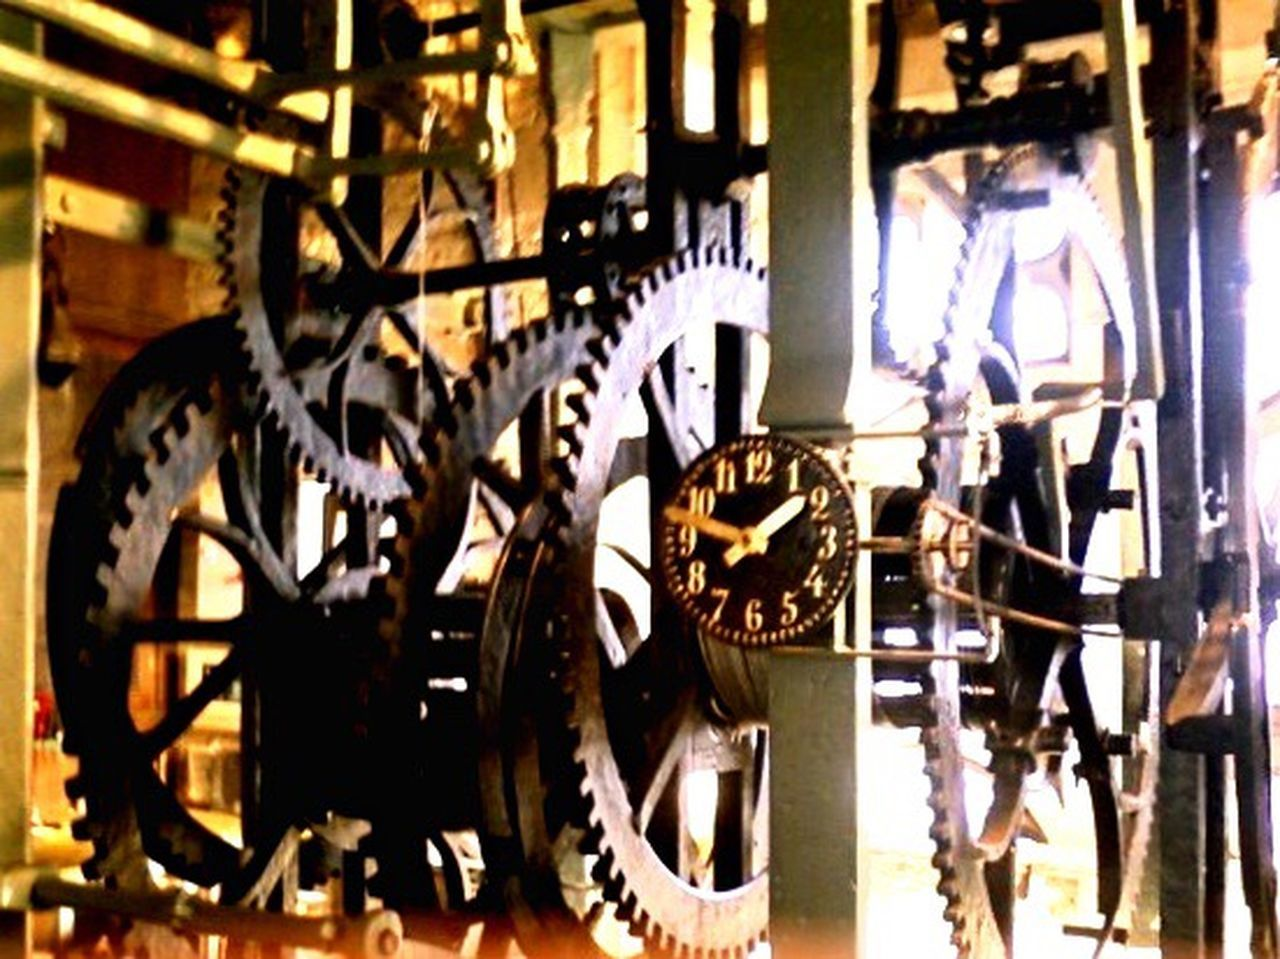 metal, machine part, gear, no people, indoors, industry, close-up, technology, day, clock